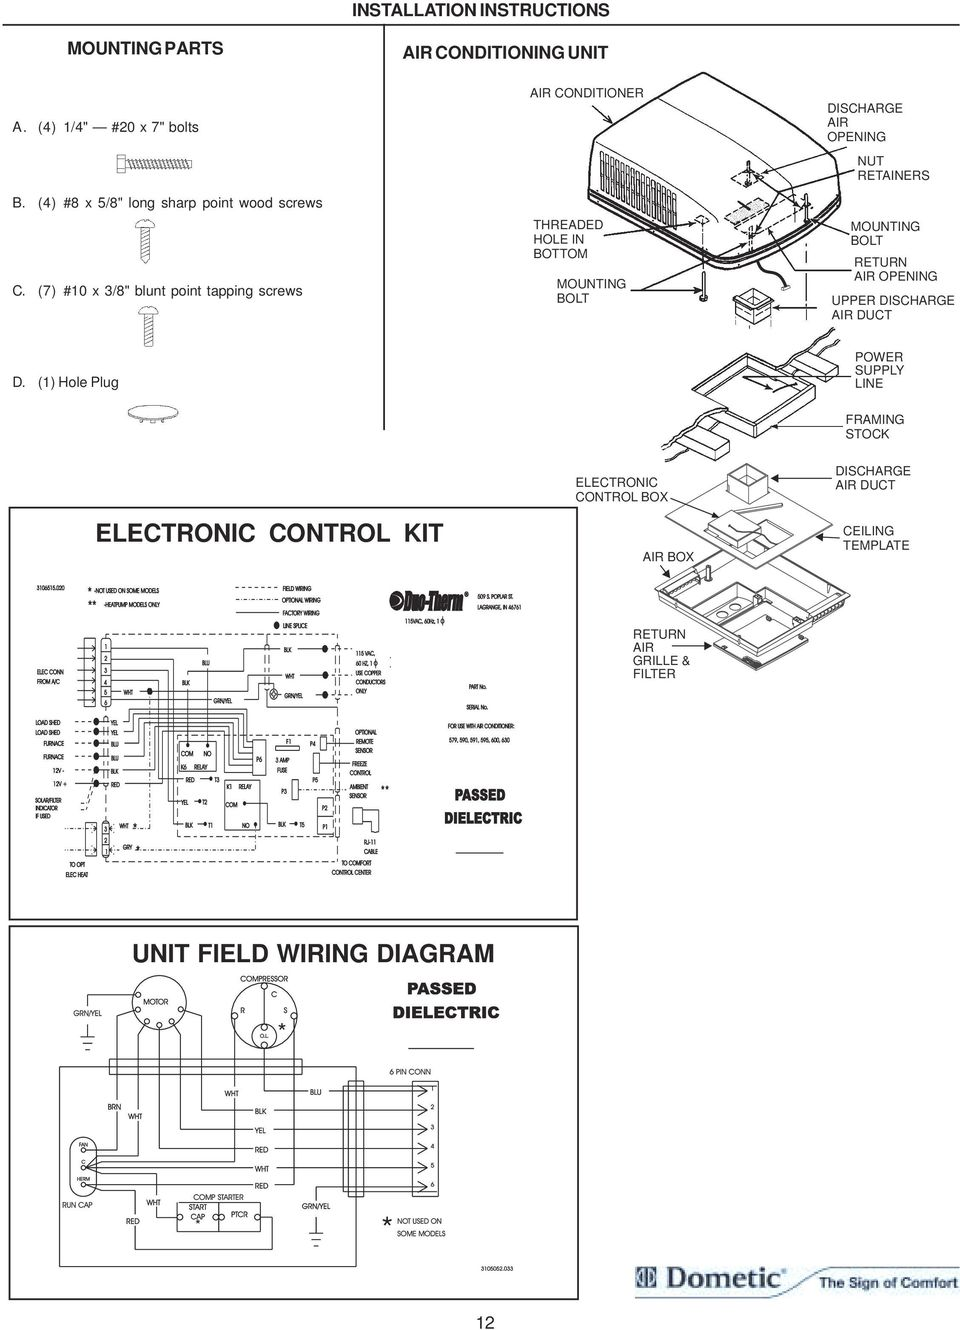 hight resolution of  1 hole plug power supply line framing stock electronic control box discharge air duct